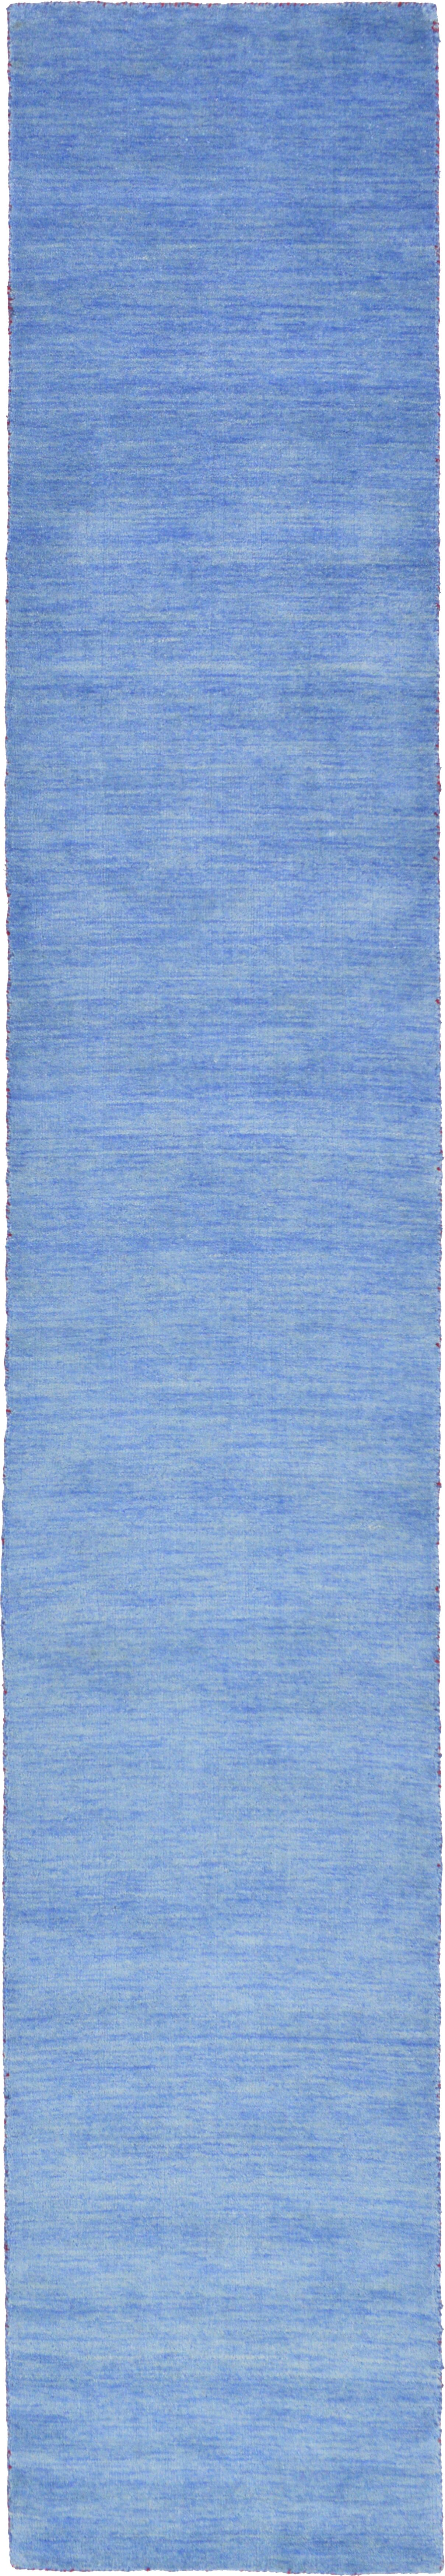 Taul Hand-Knotted Wool Light Blue Area Rug Rug Size: 2' 7 x 16' 5